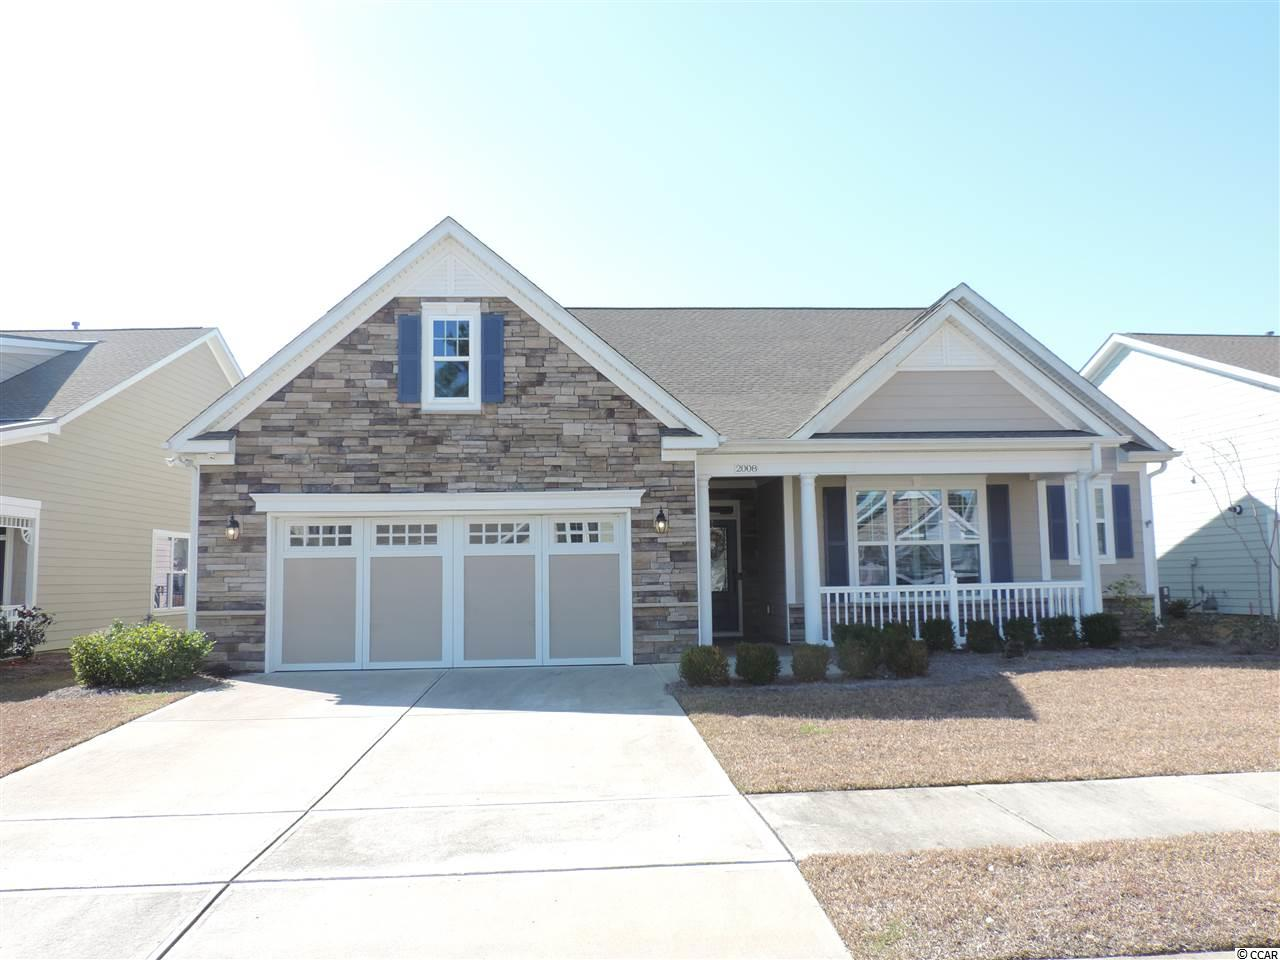 2008 Suncrest Dr., Myrtle Beach, South Carolina